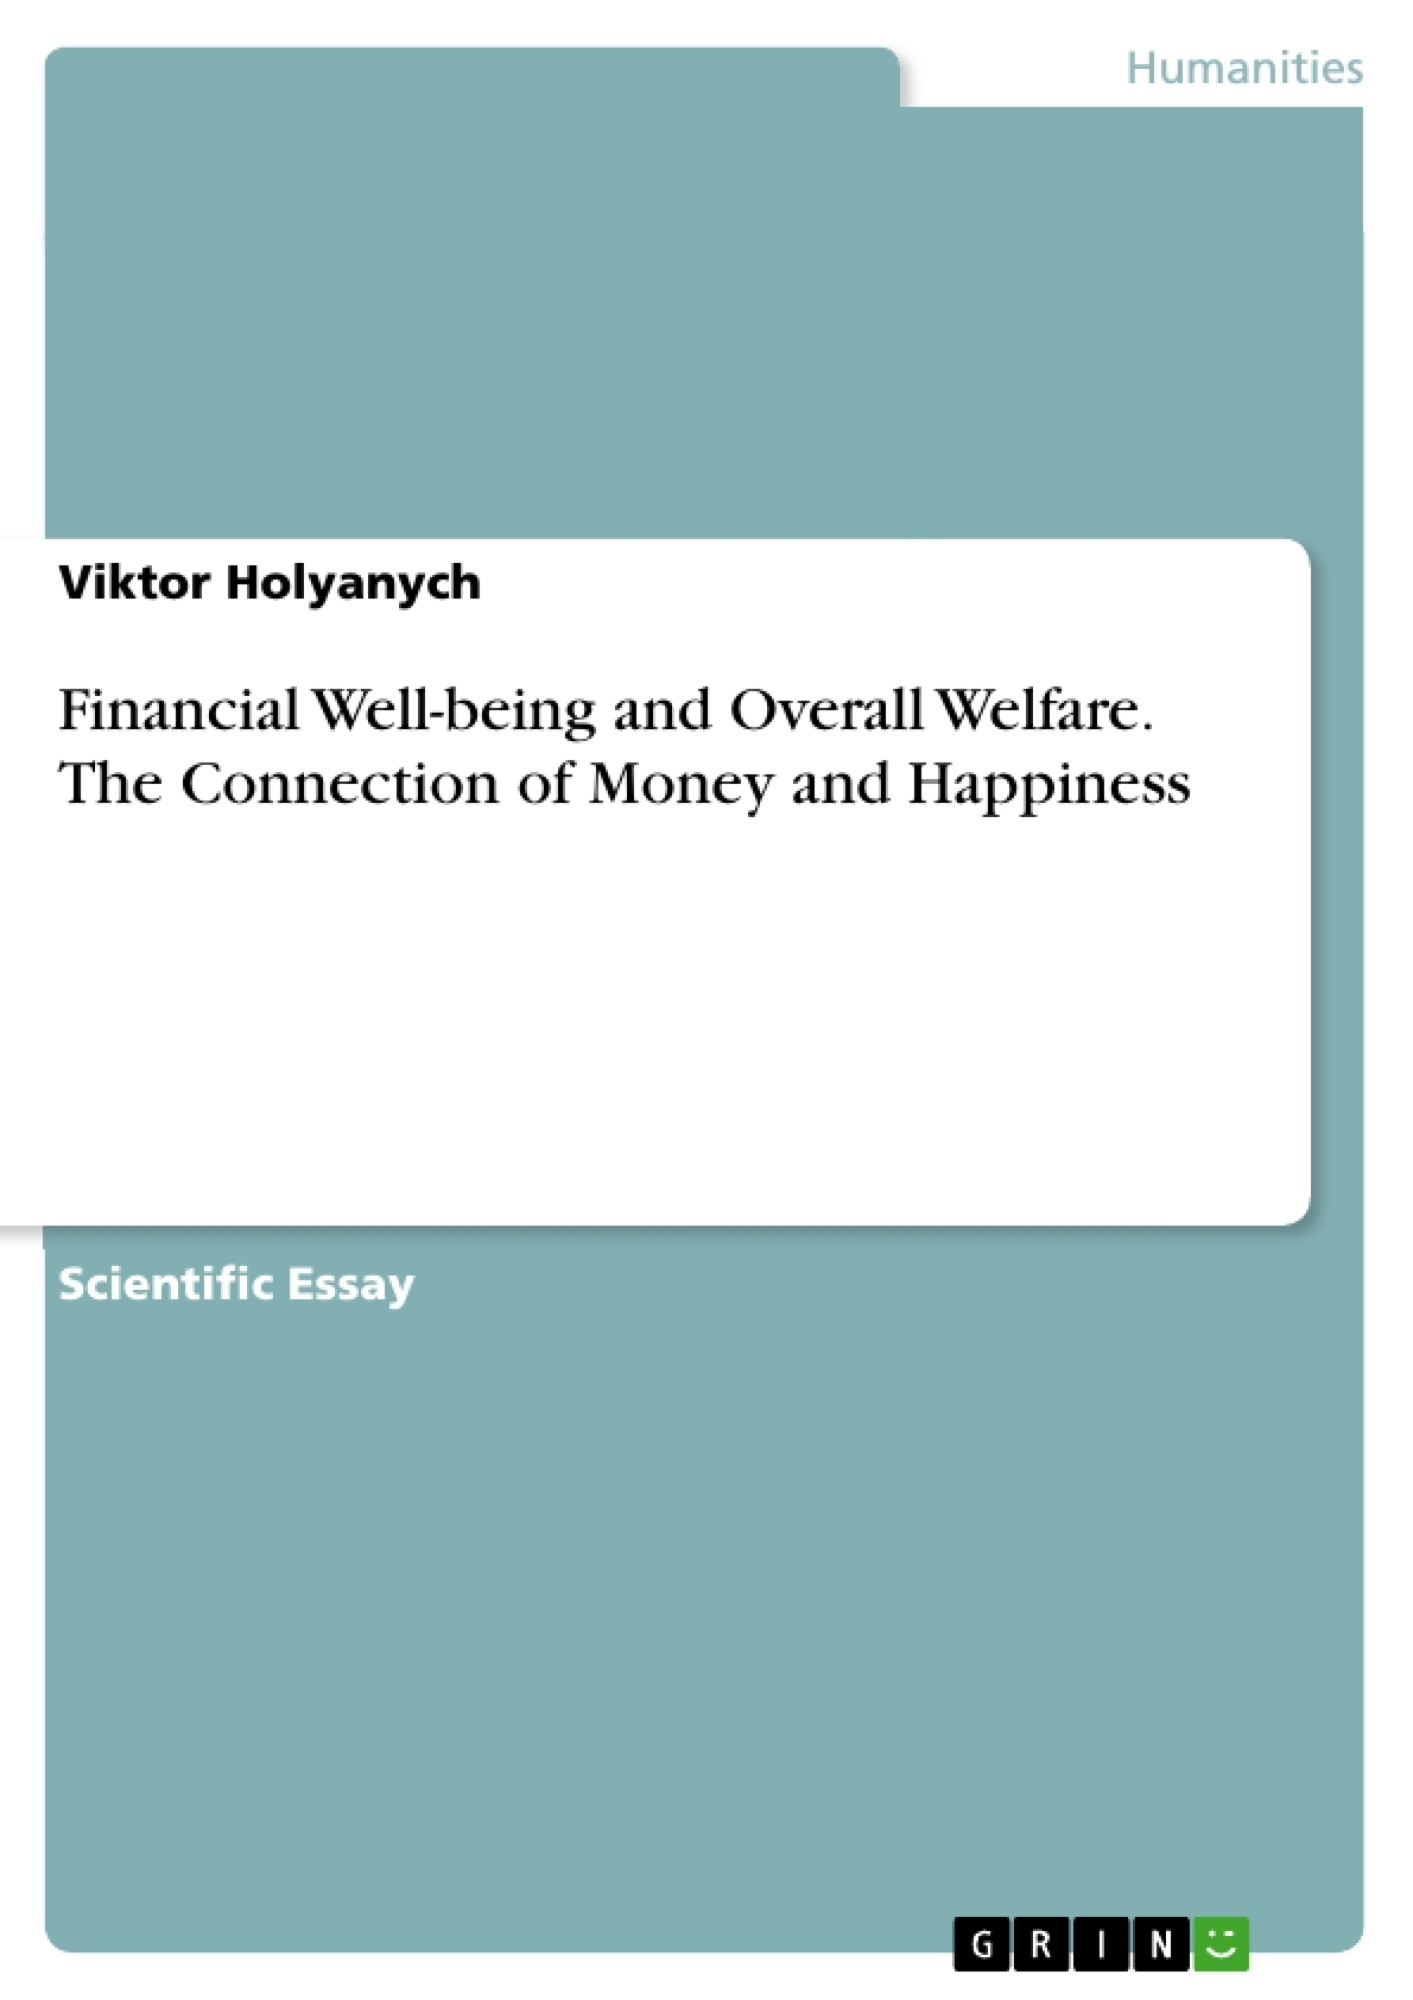 Title: Financial Well-being and Overall Welfare. The Connection of Money and Happiness